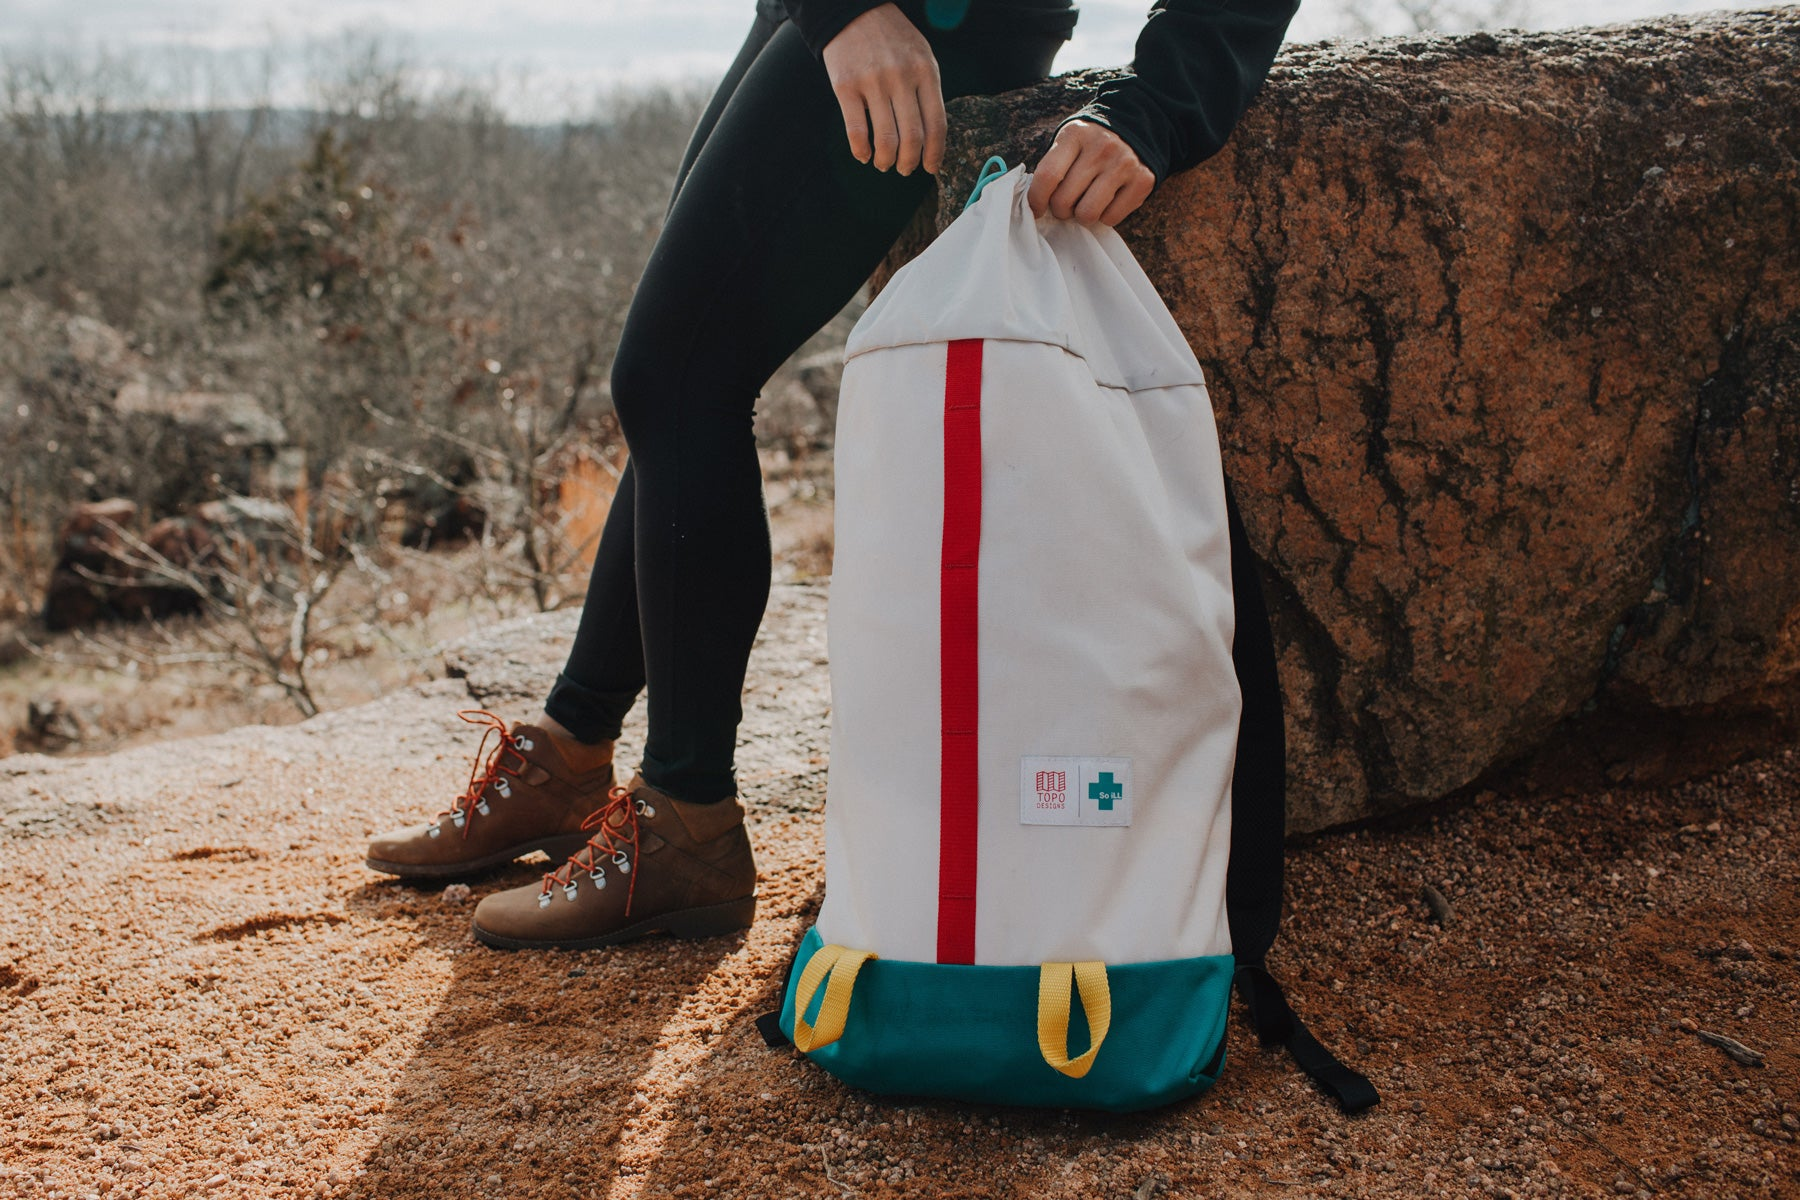 the topo x so ill cosmos bag is featured at elephant rocks